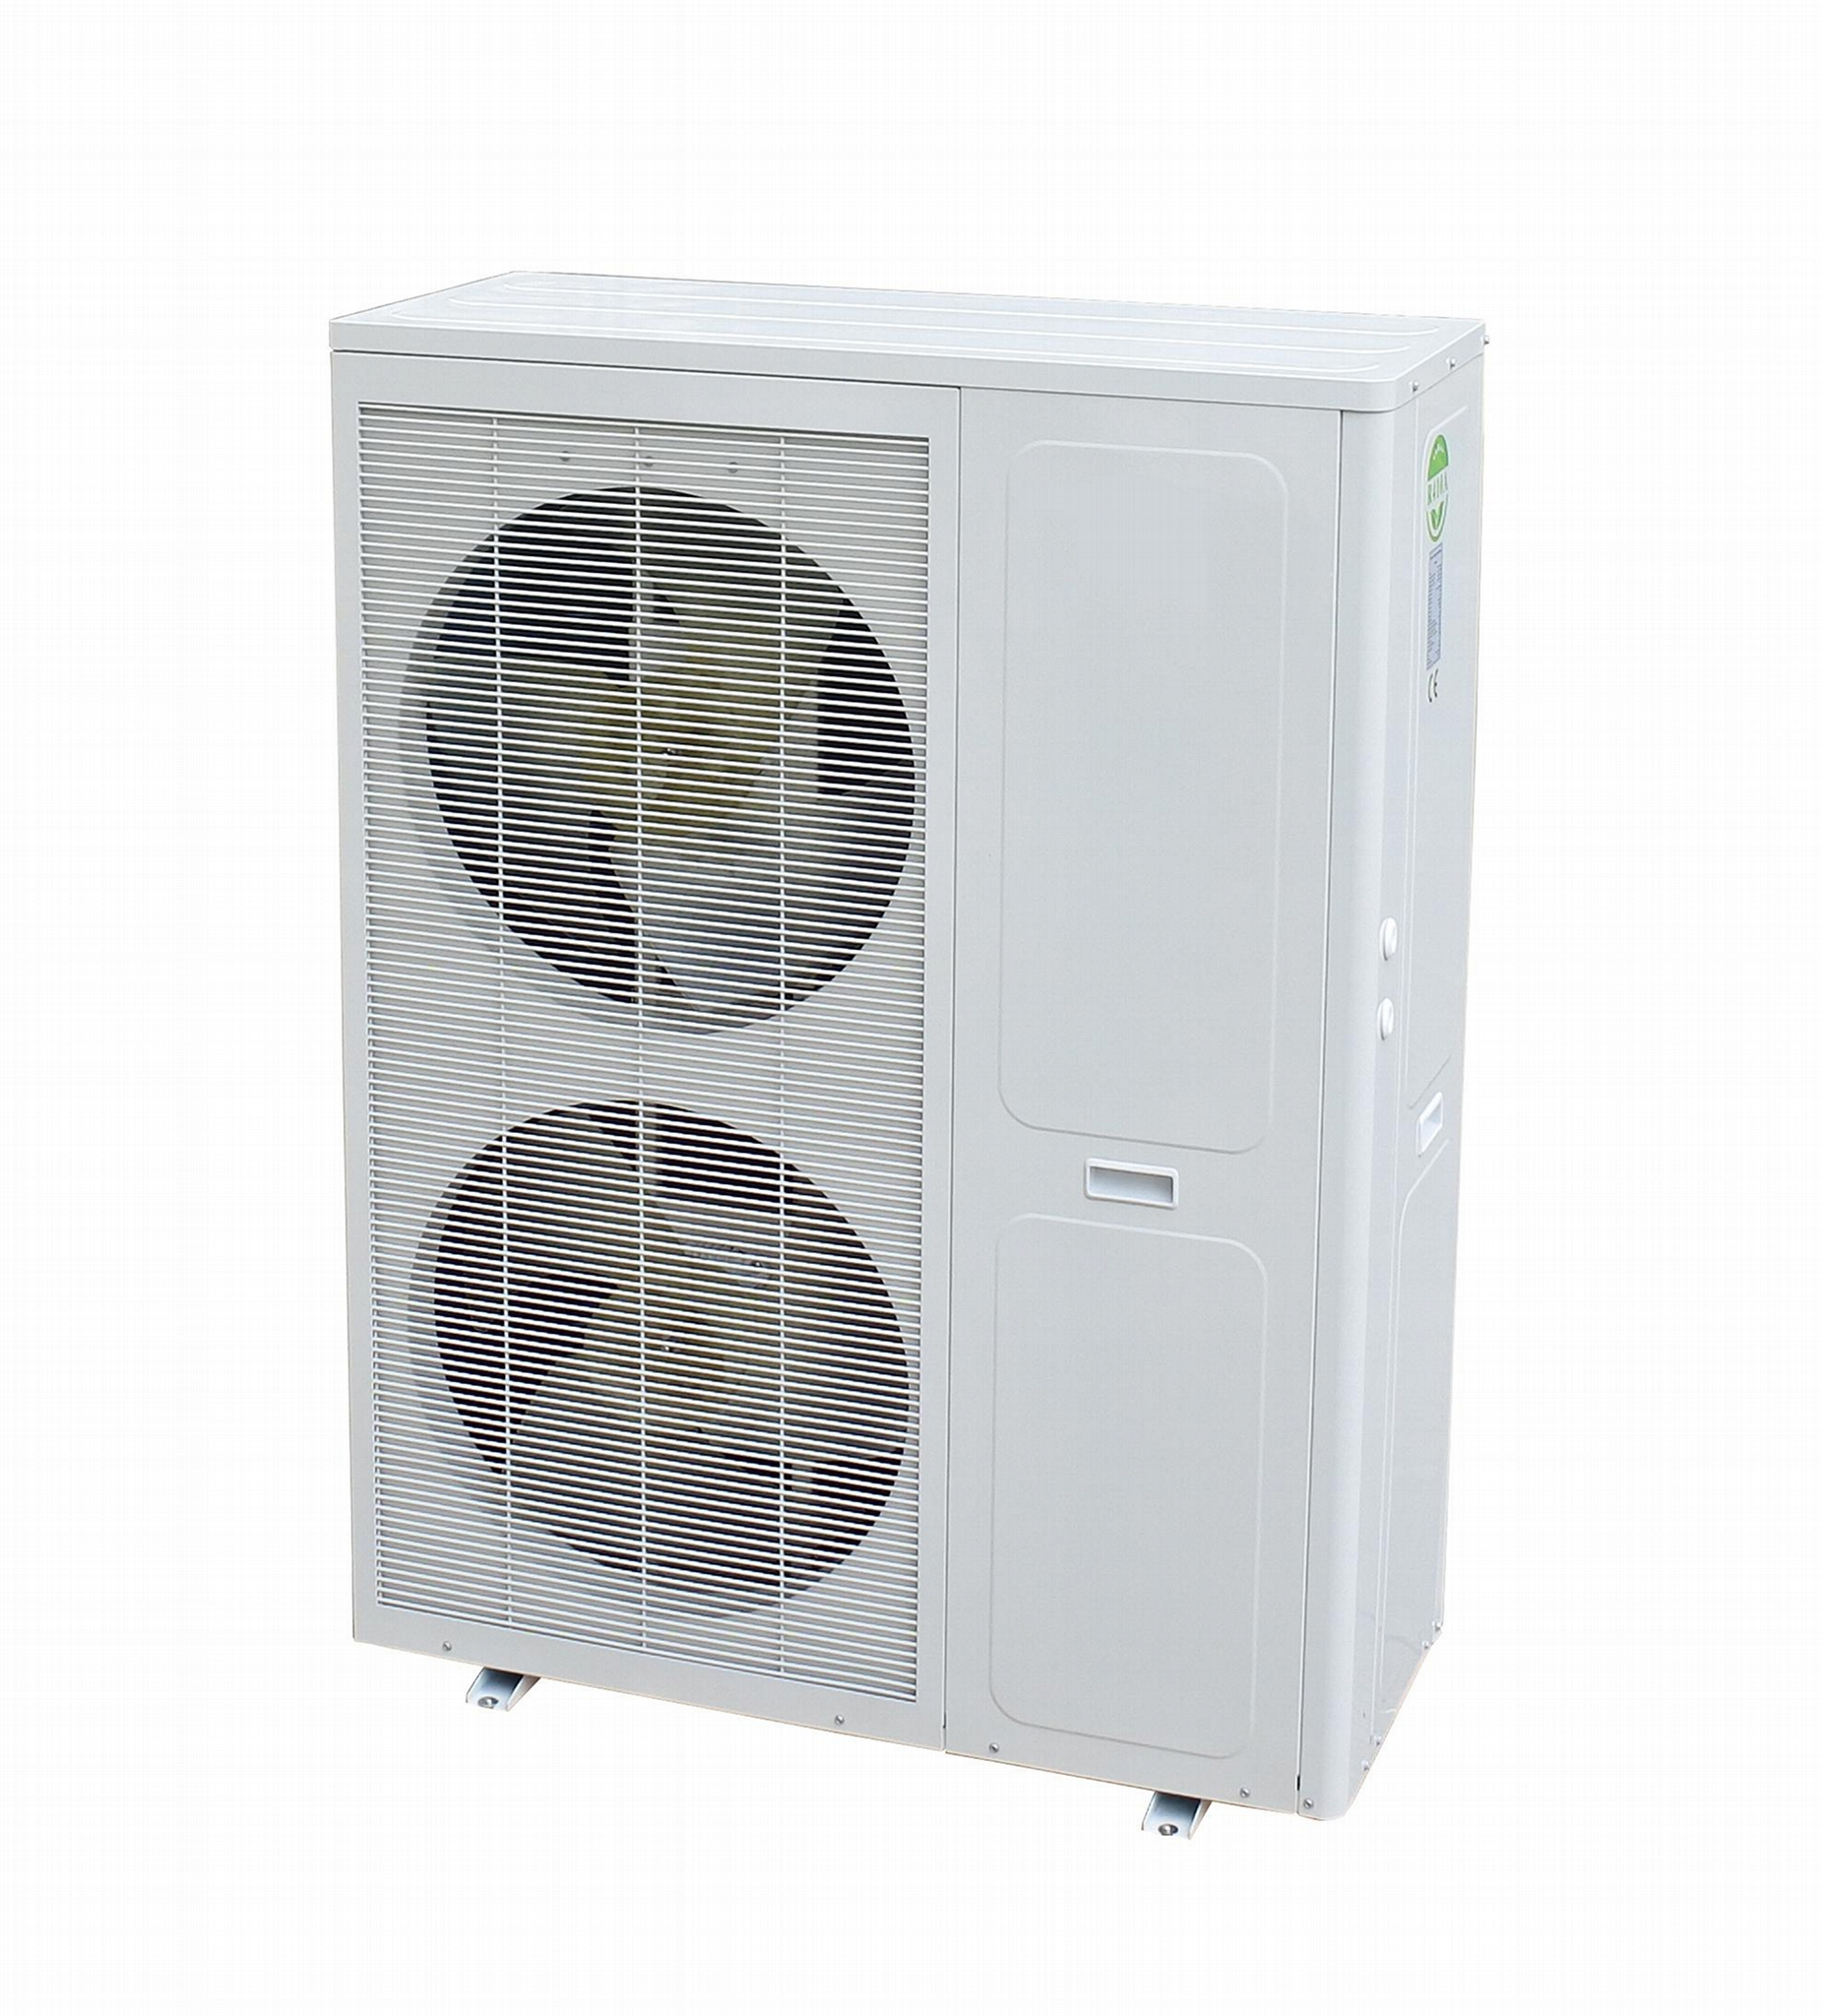 inverter heat pump